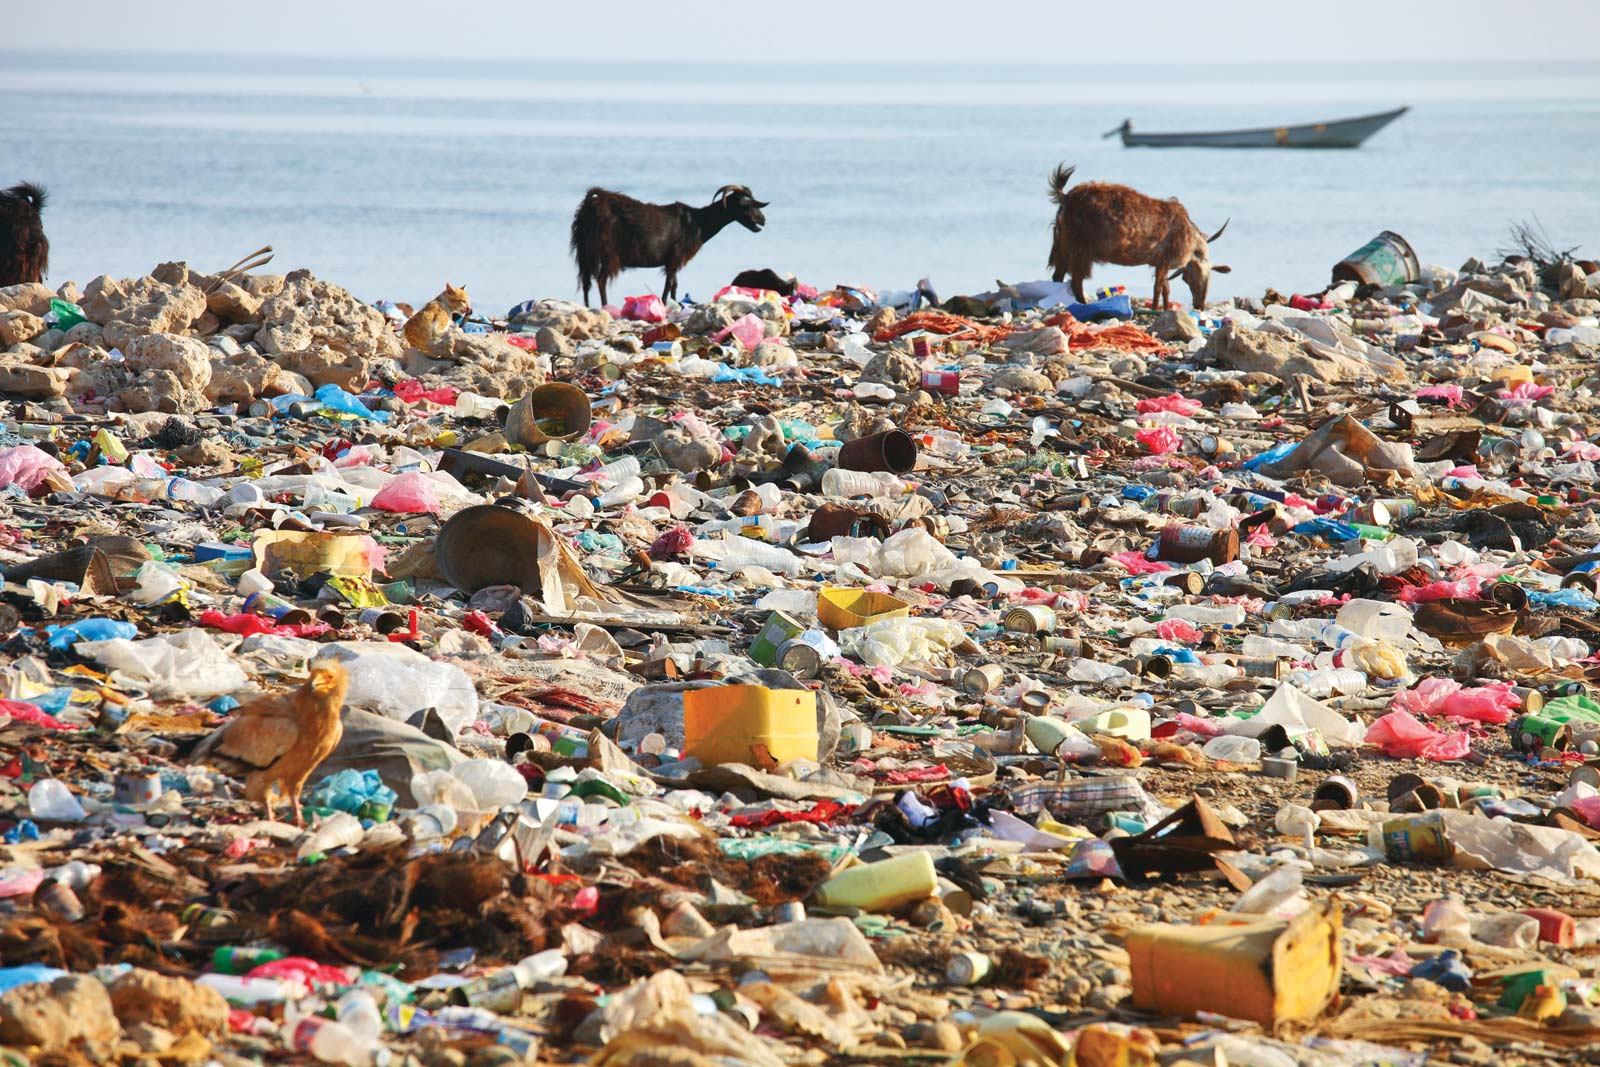 Waste and Plastic pollution with animals scavenging